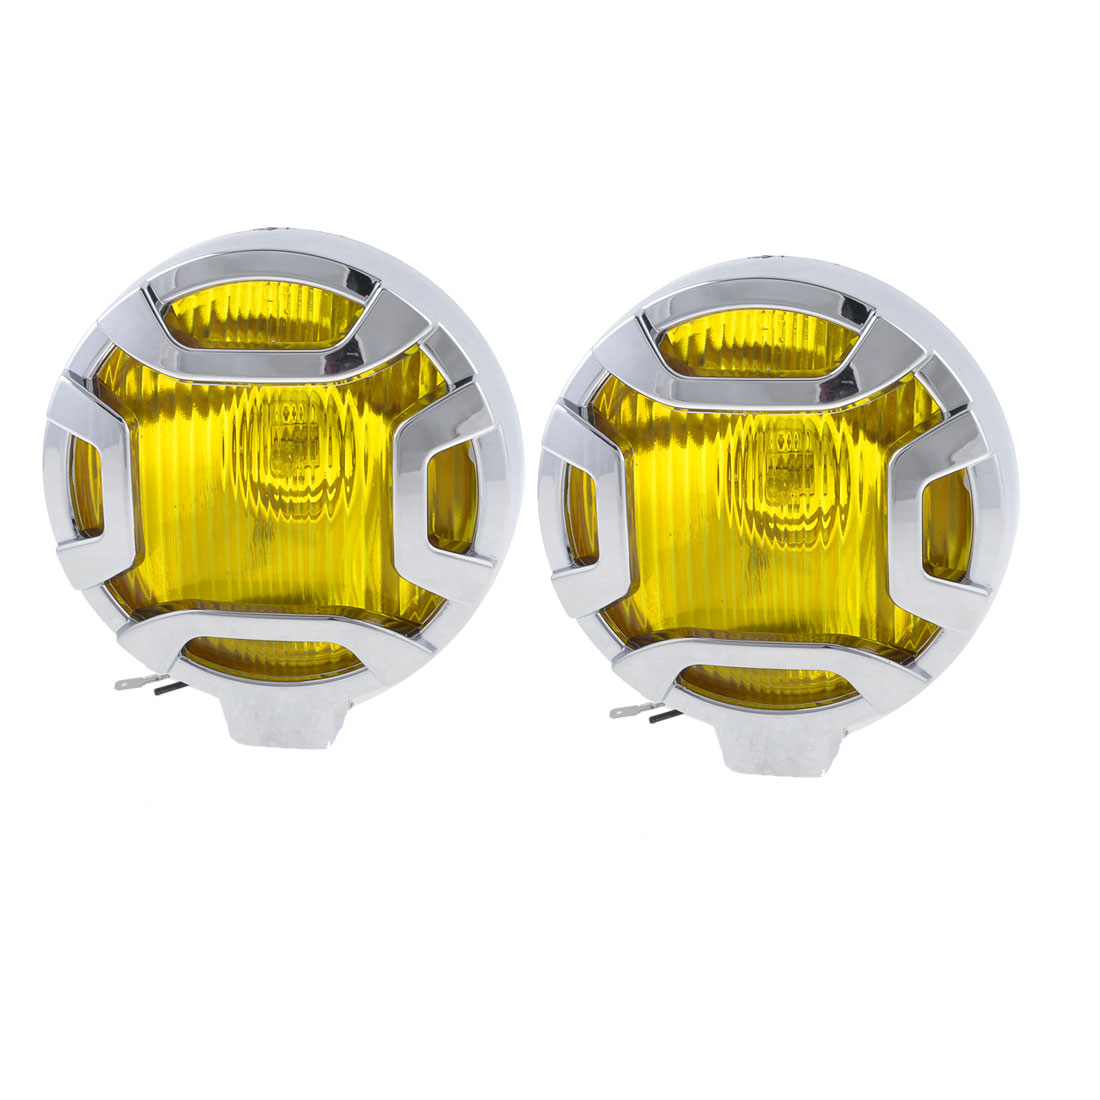 DC 12V 55W Round Yellow Lens H3 Yellow Lighting Auto Car Fog Light 2 Pcs